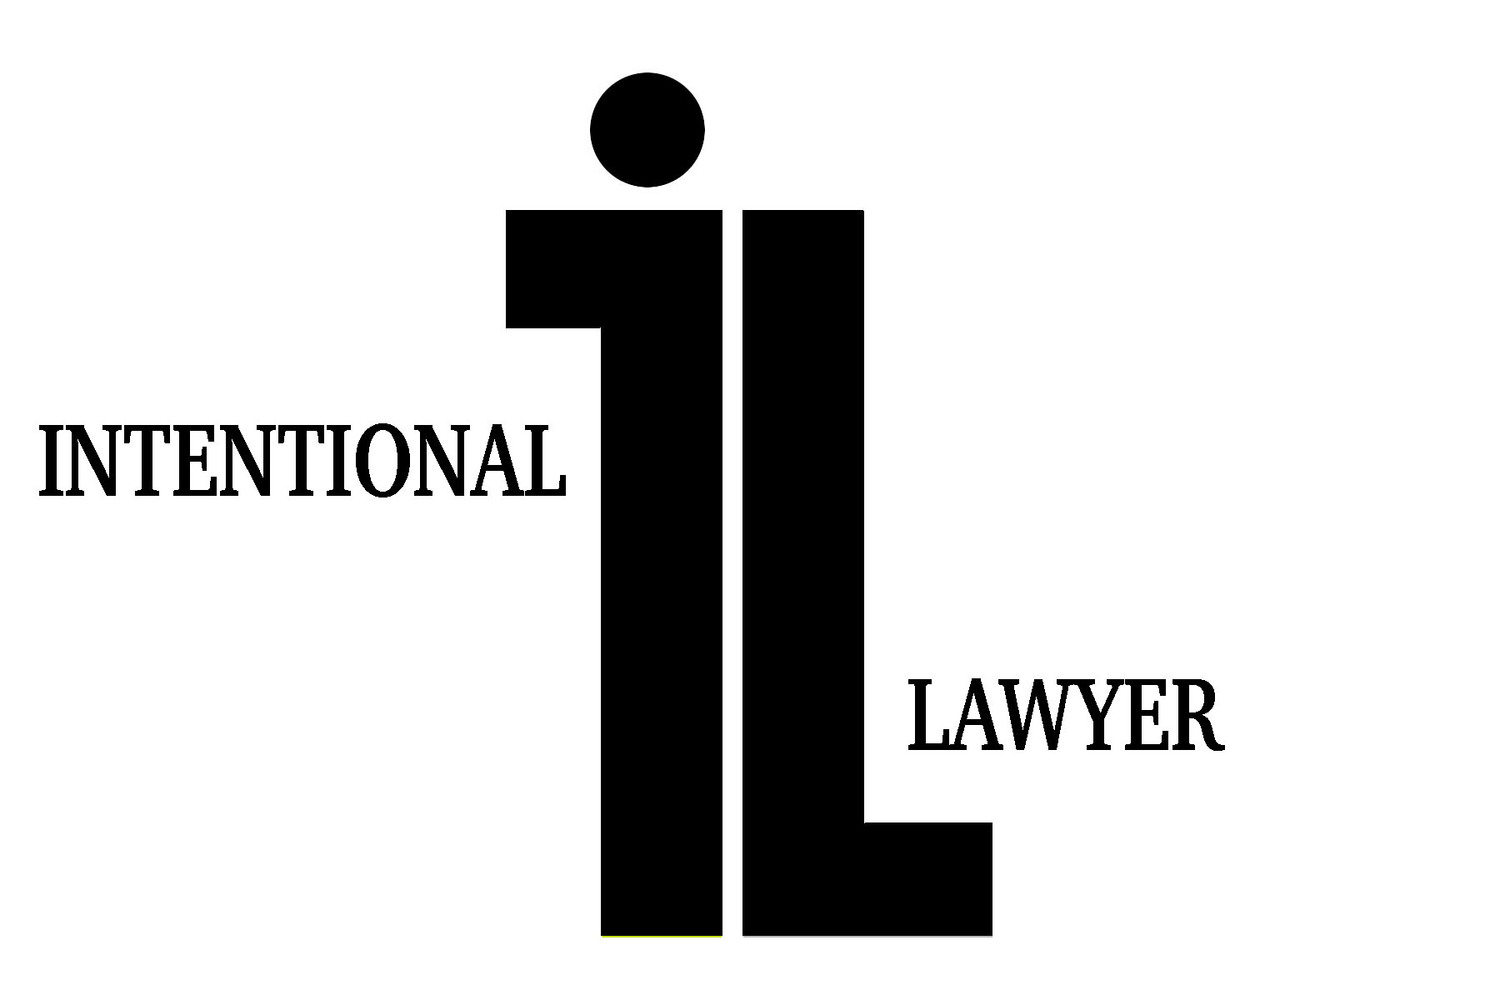 Intentional Lawyer